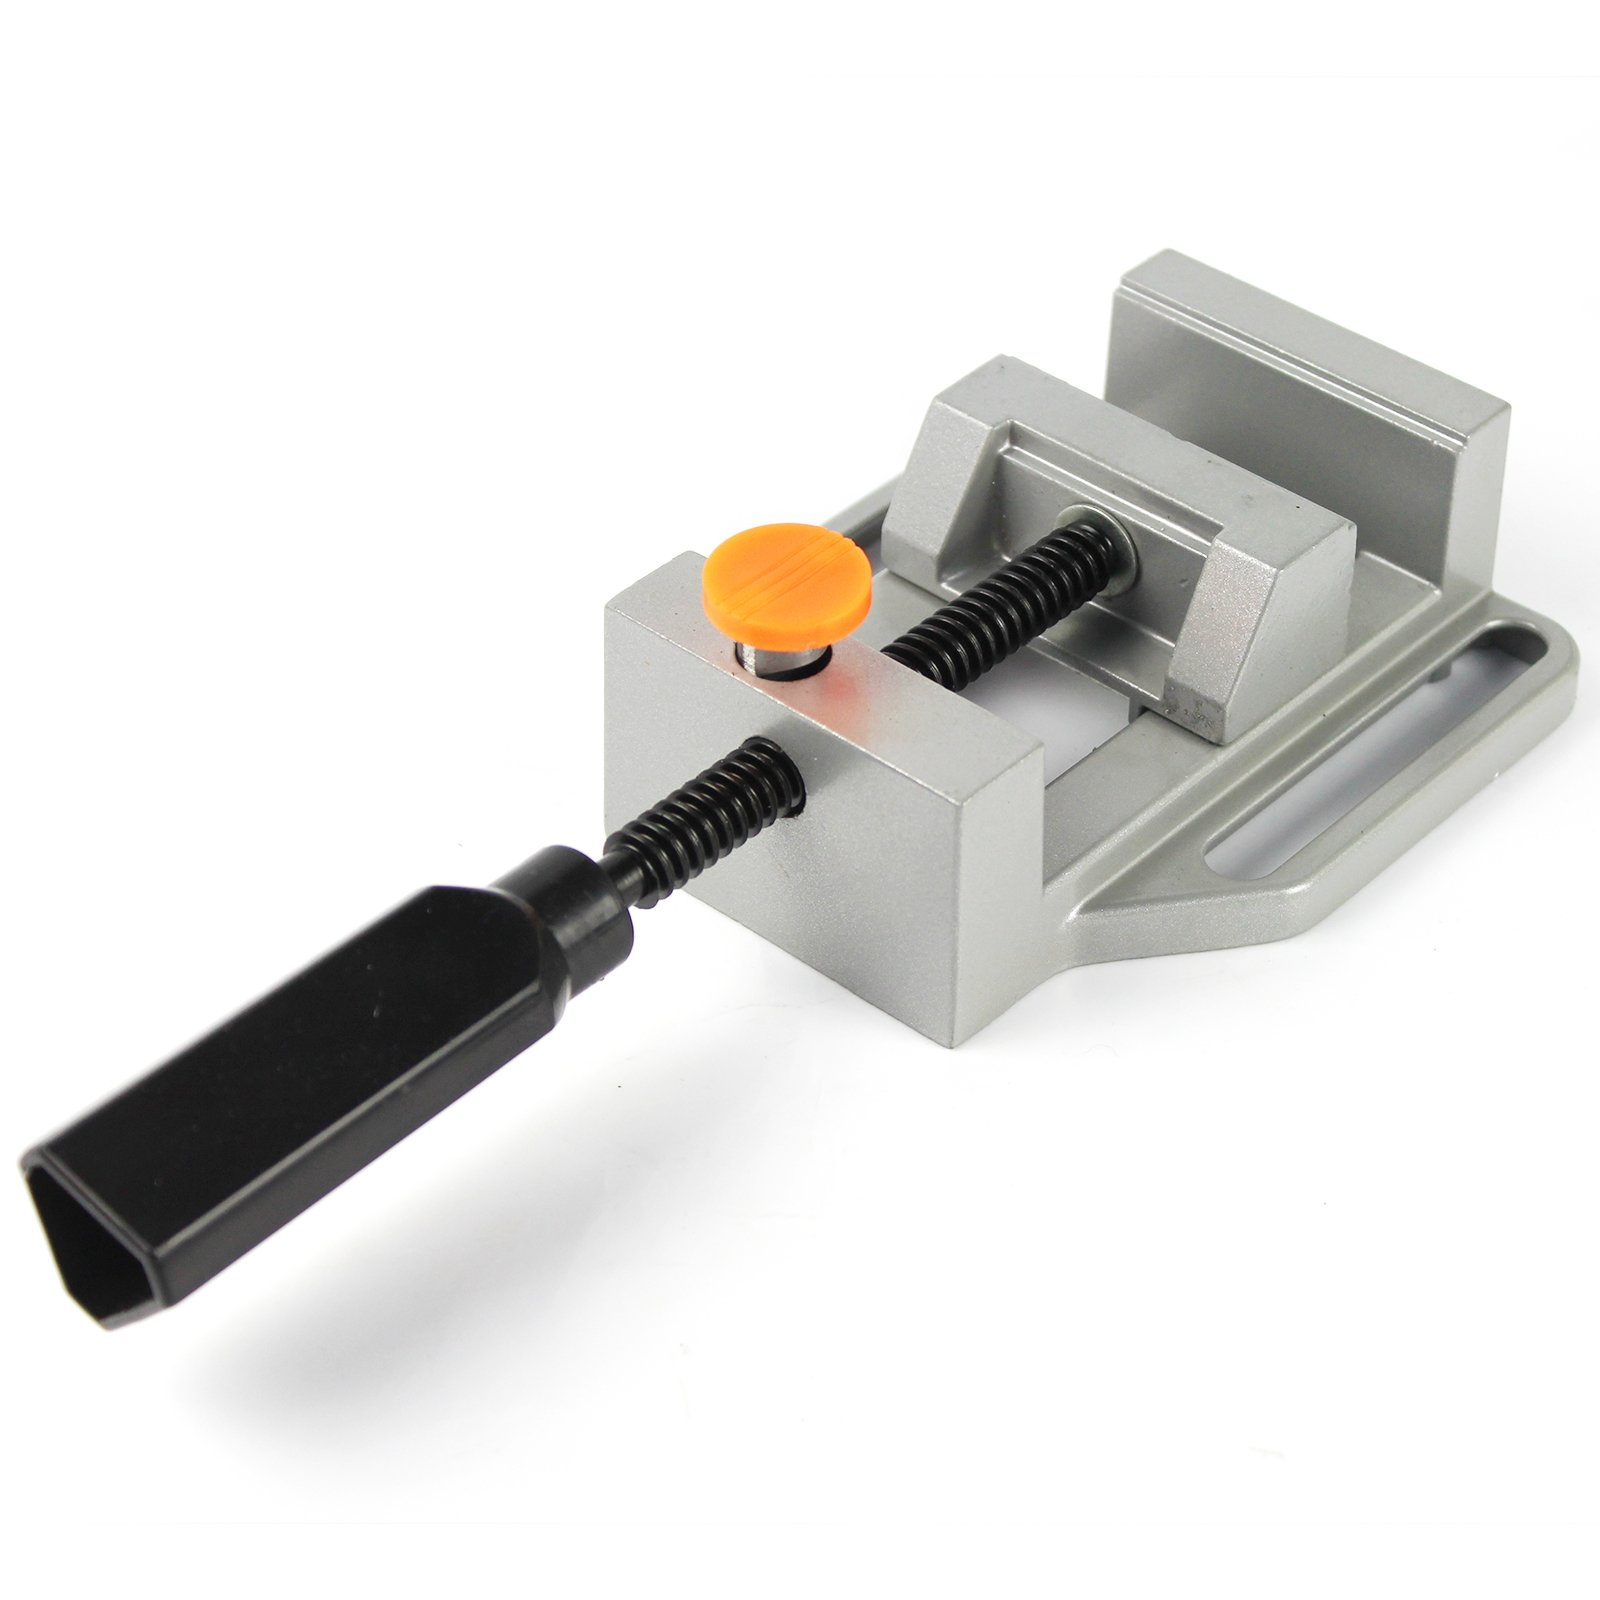 PANGOLIN Drill Press Vise, Quick Release Clamp Vice Light Duty Perfect for Woodworking,Crafts or Handyman,Small Projects and Keep with 3 Year Warranty by PANGOLIN